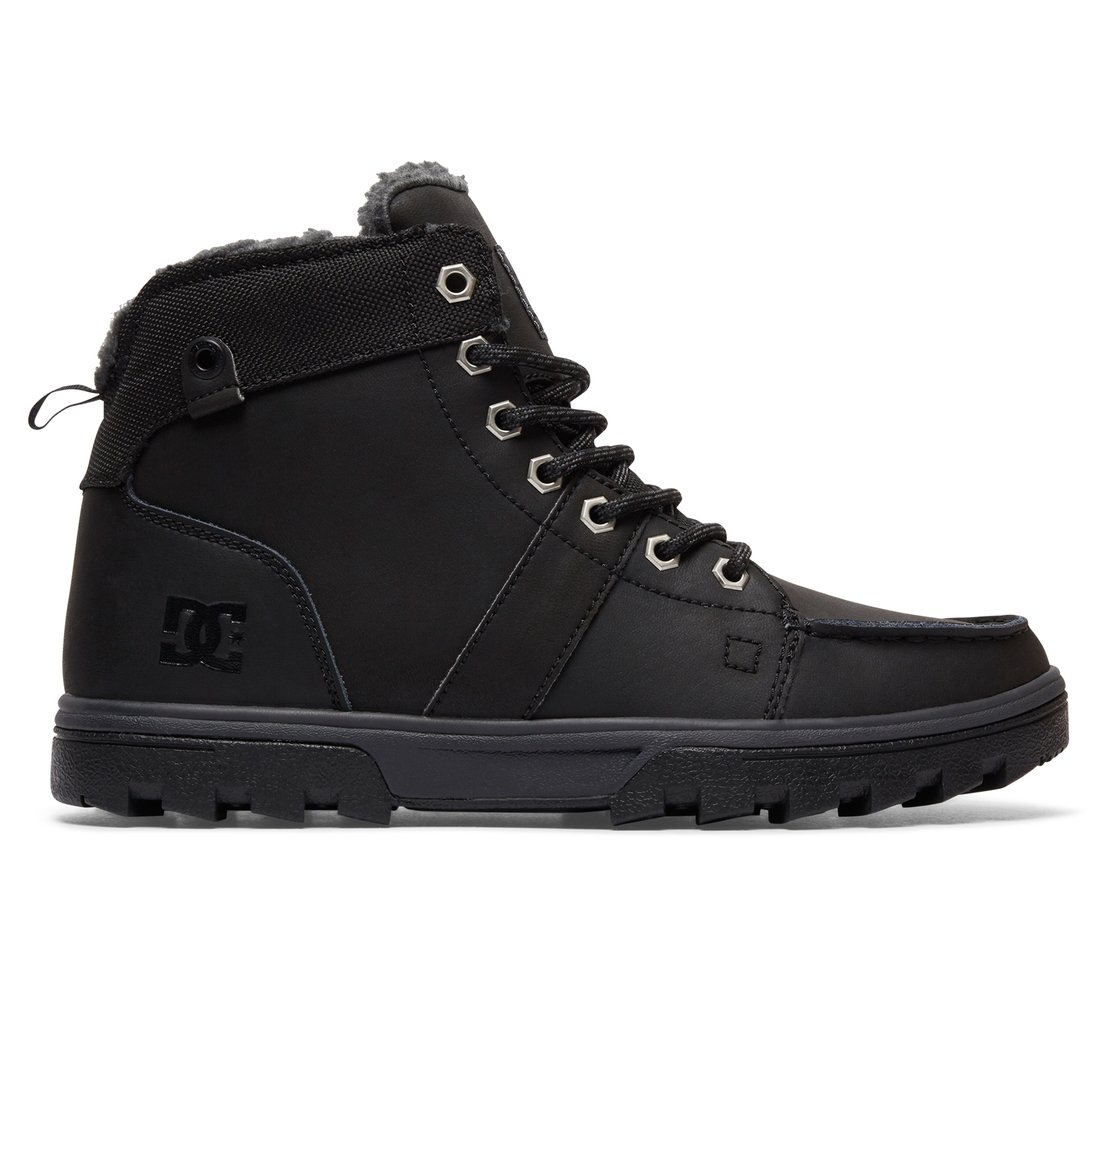 DC Shoes™ Men's Woodland Winter Boots 303241 | eBay